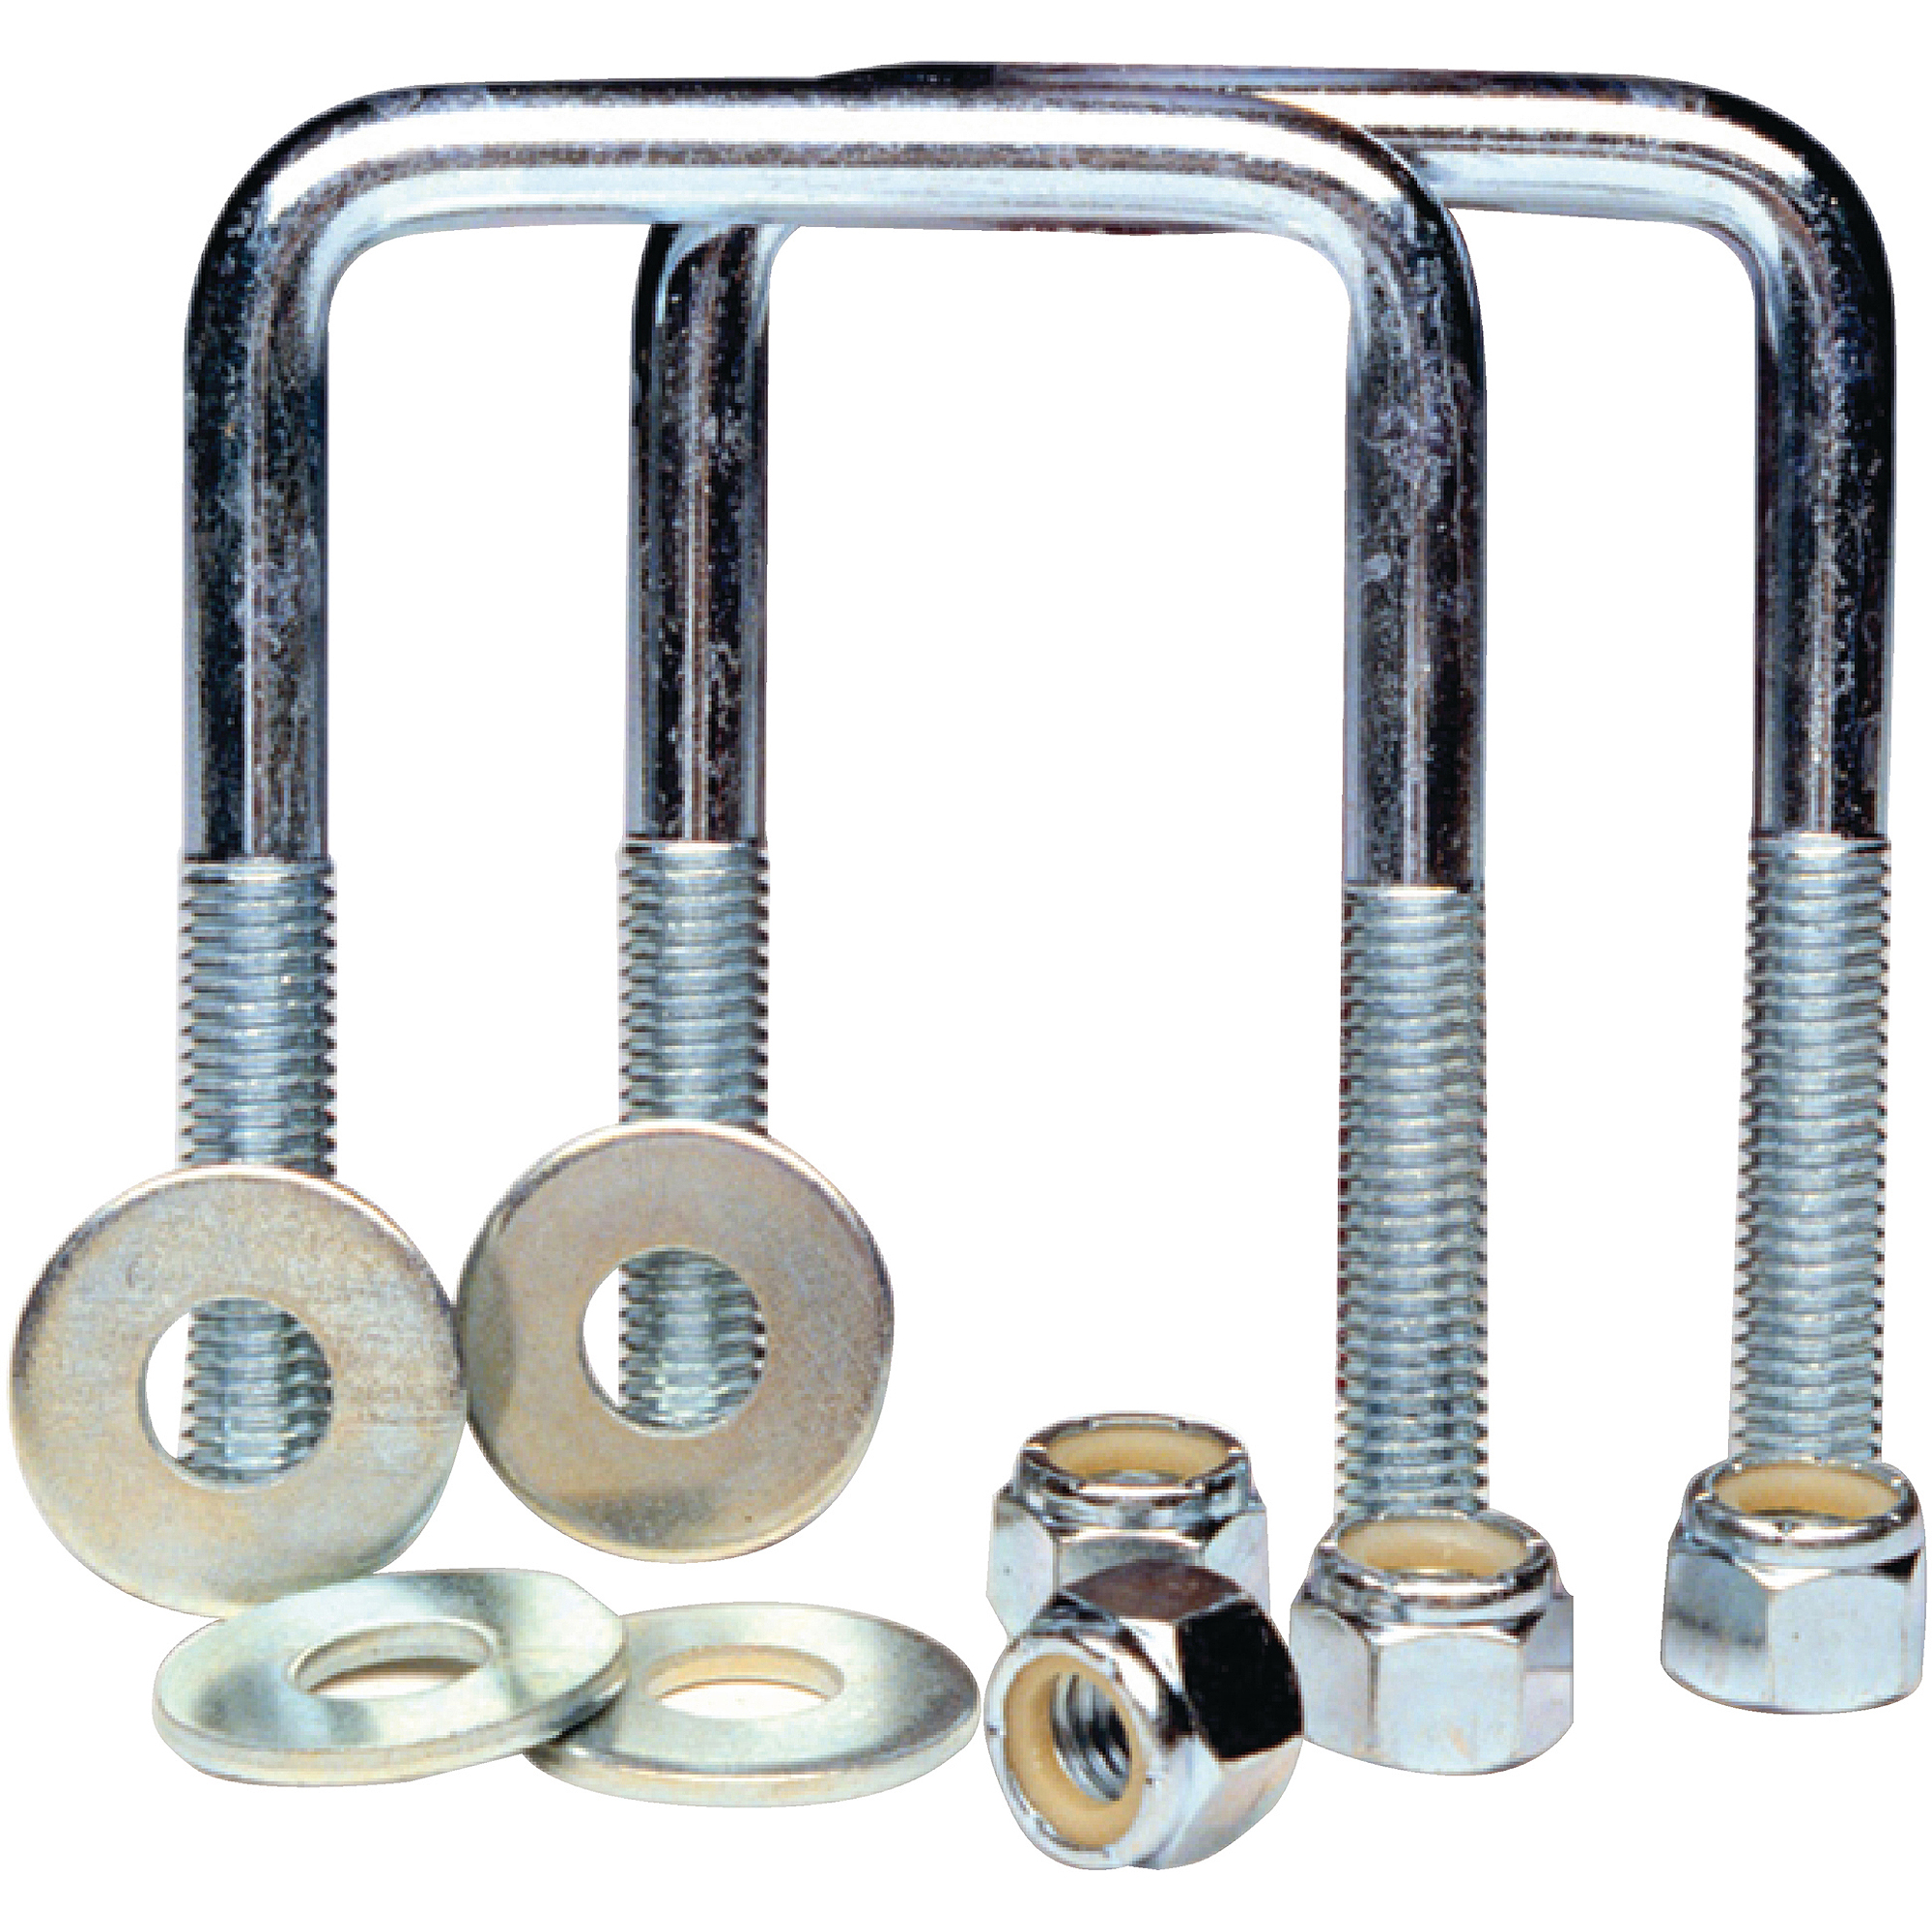 Tie Down Engineering Zinc Plated Square U-Bolt Kit